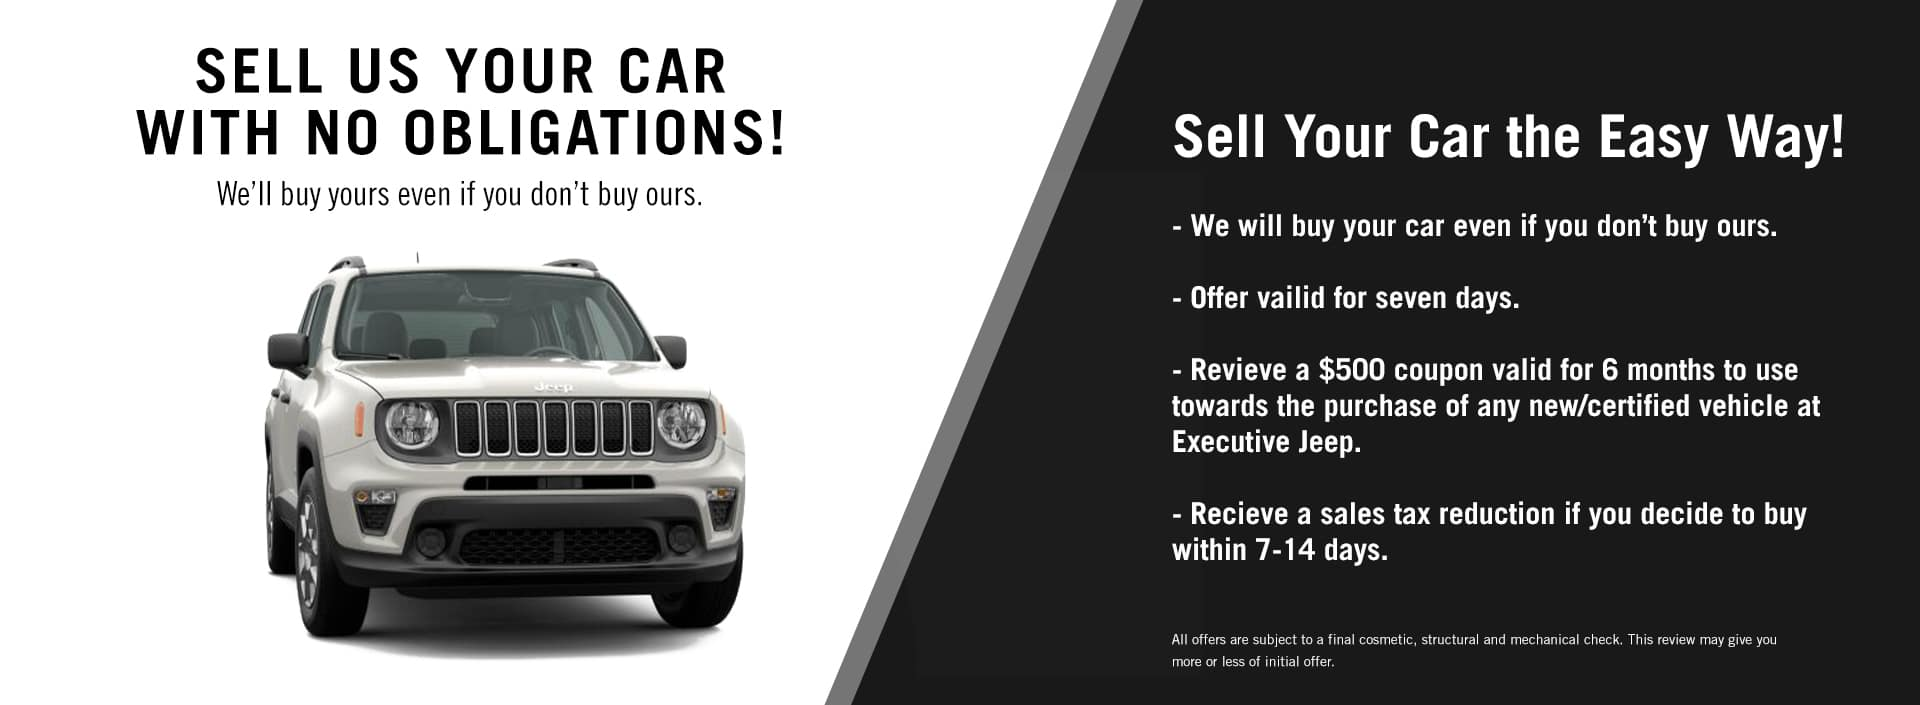 EAG_Jeep_SELL US YOUR CAR_WITH NO OBLIGATIONS!